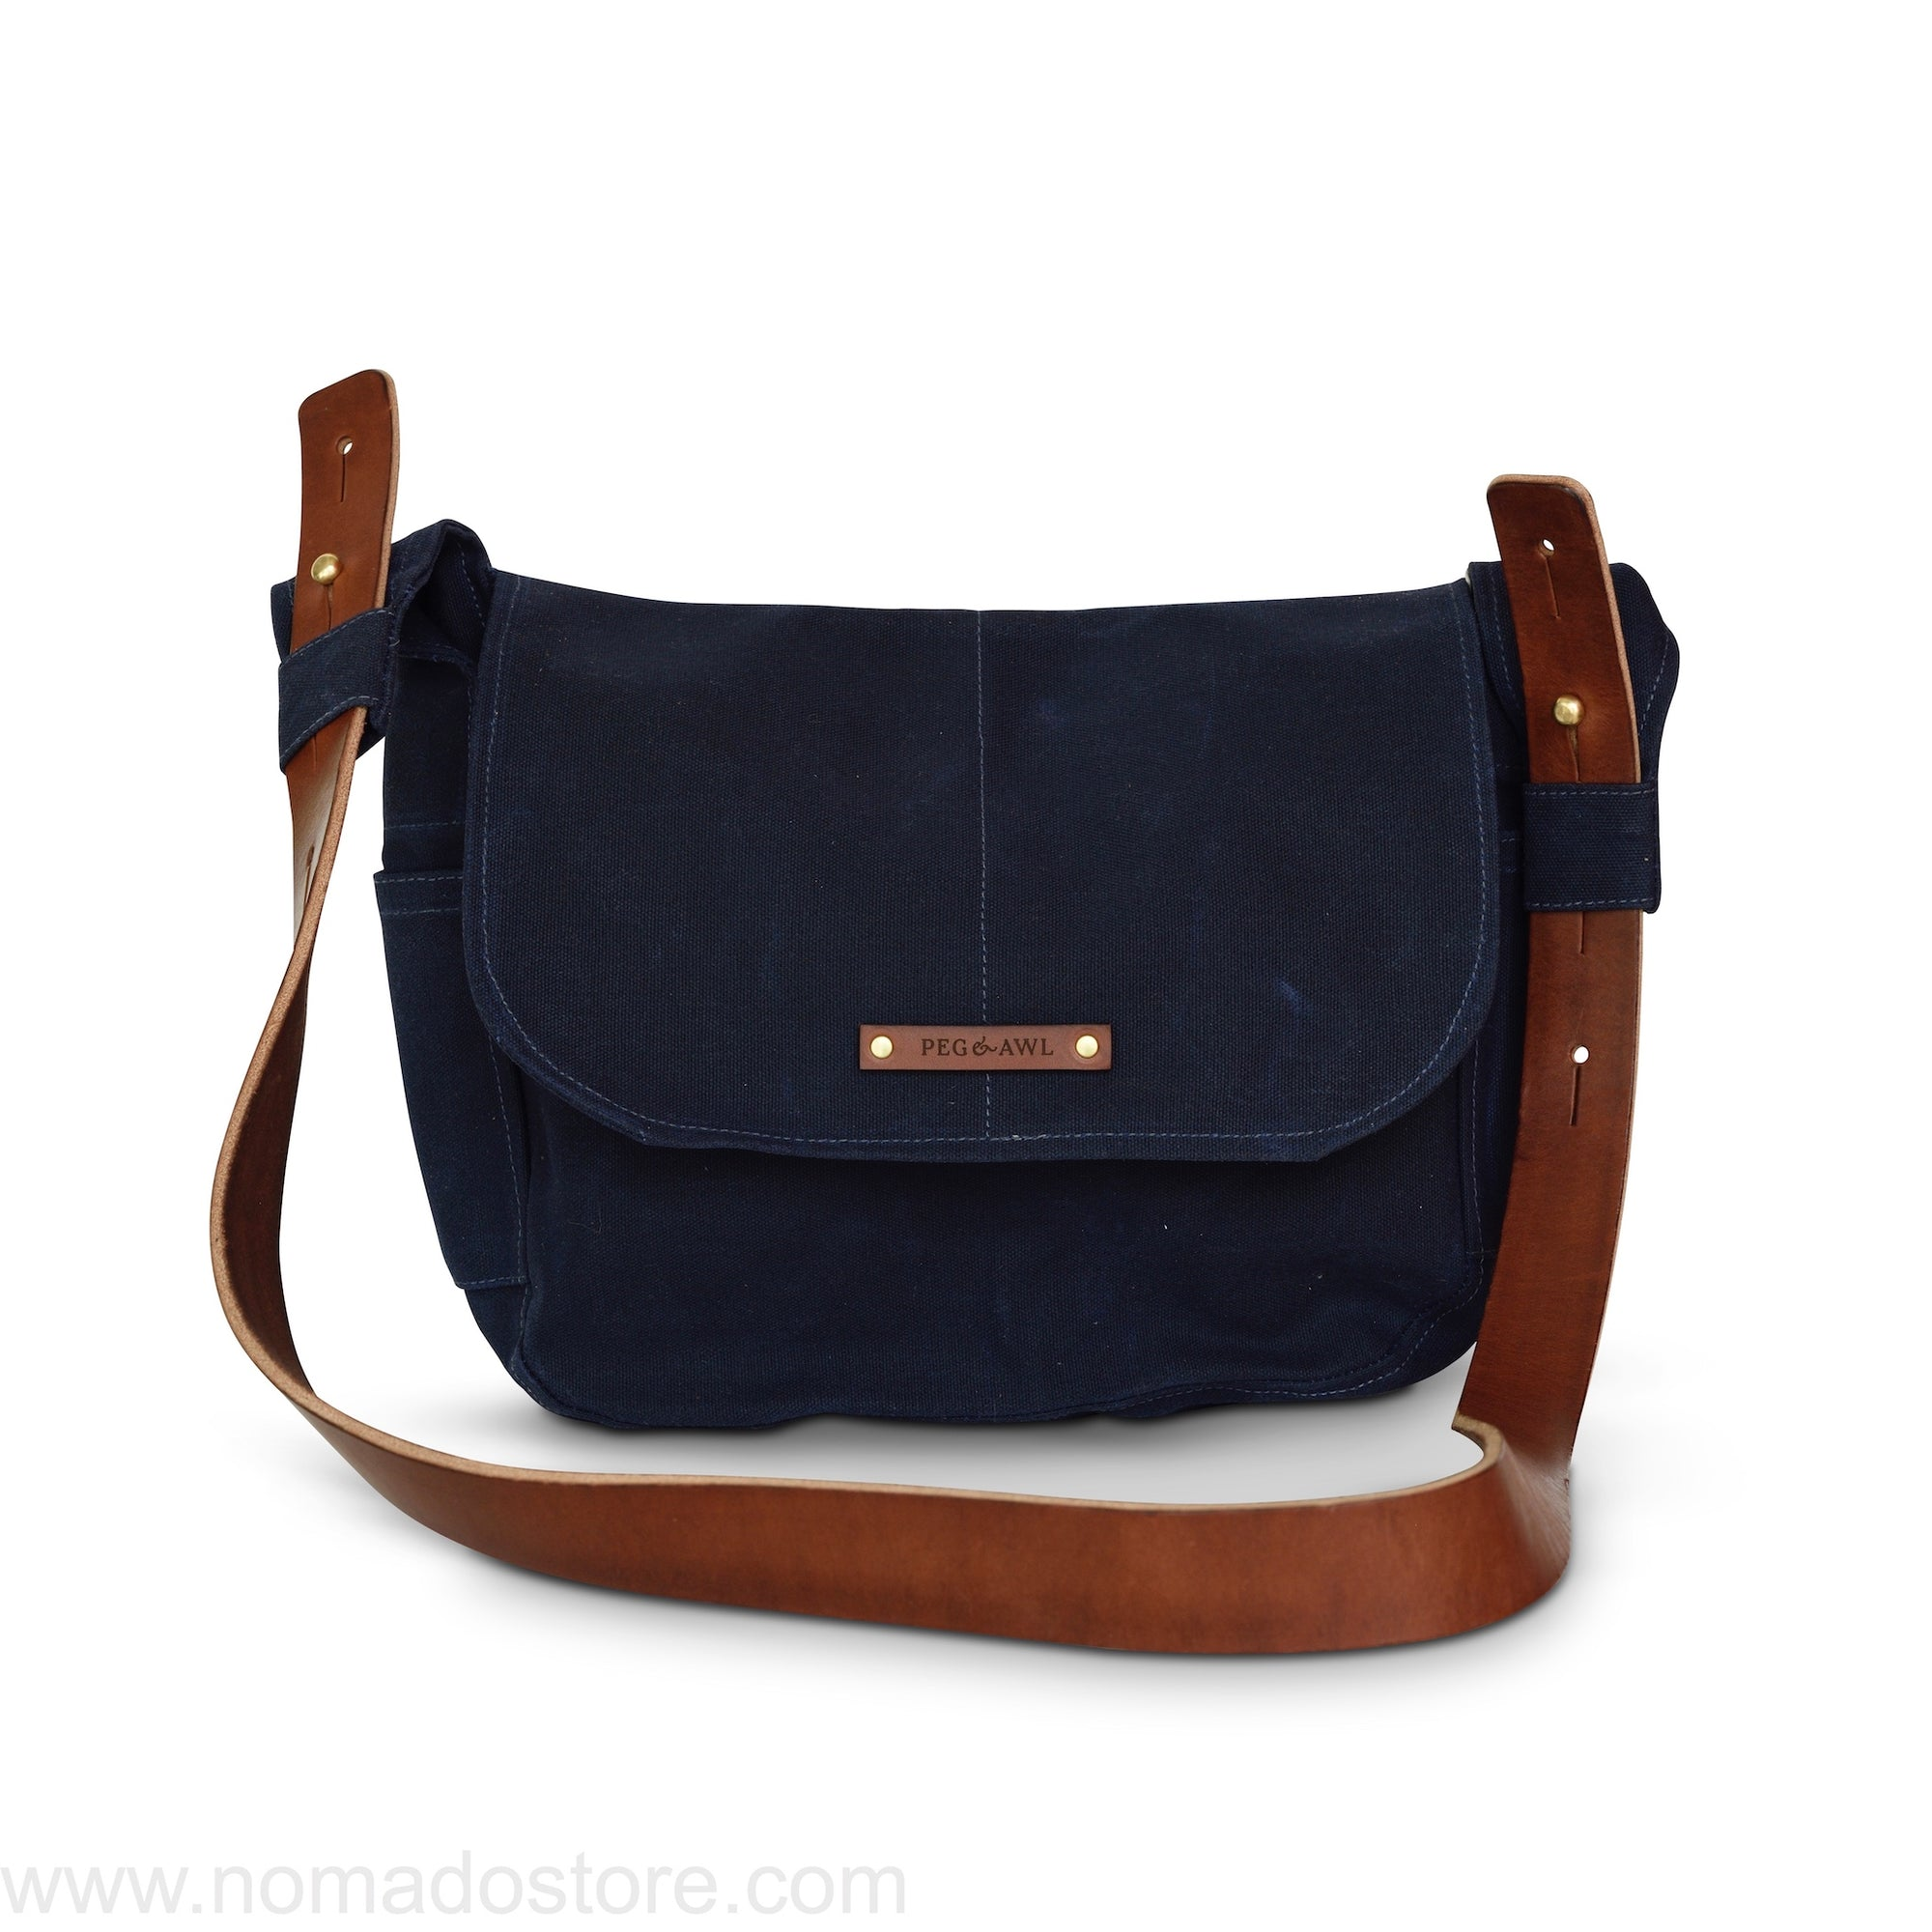 Peg and Awl The Finch Satchel - Rook - NOMADO Store